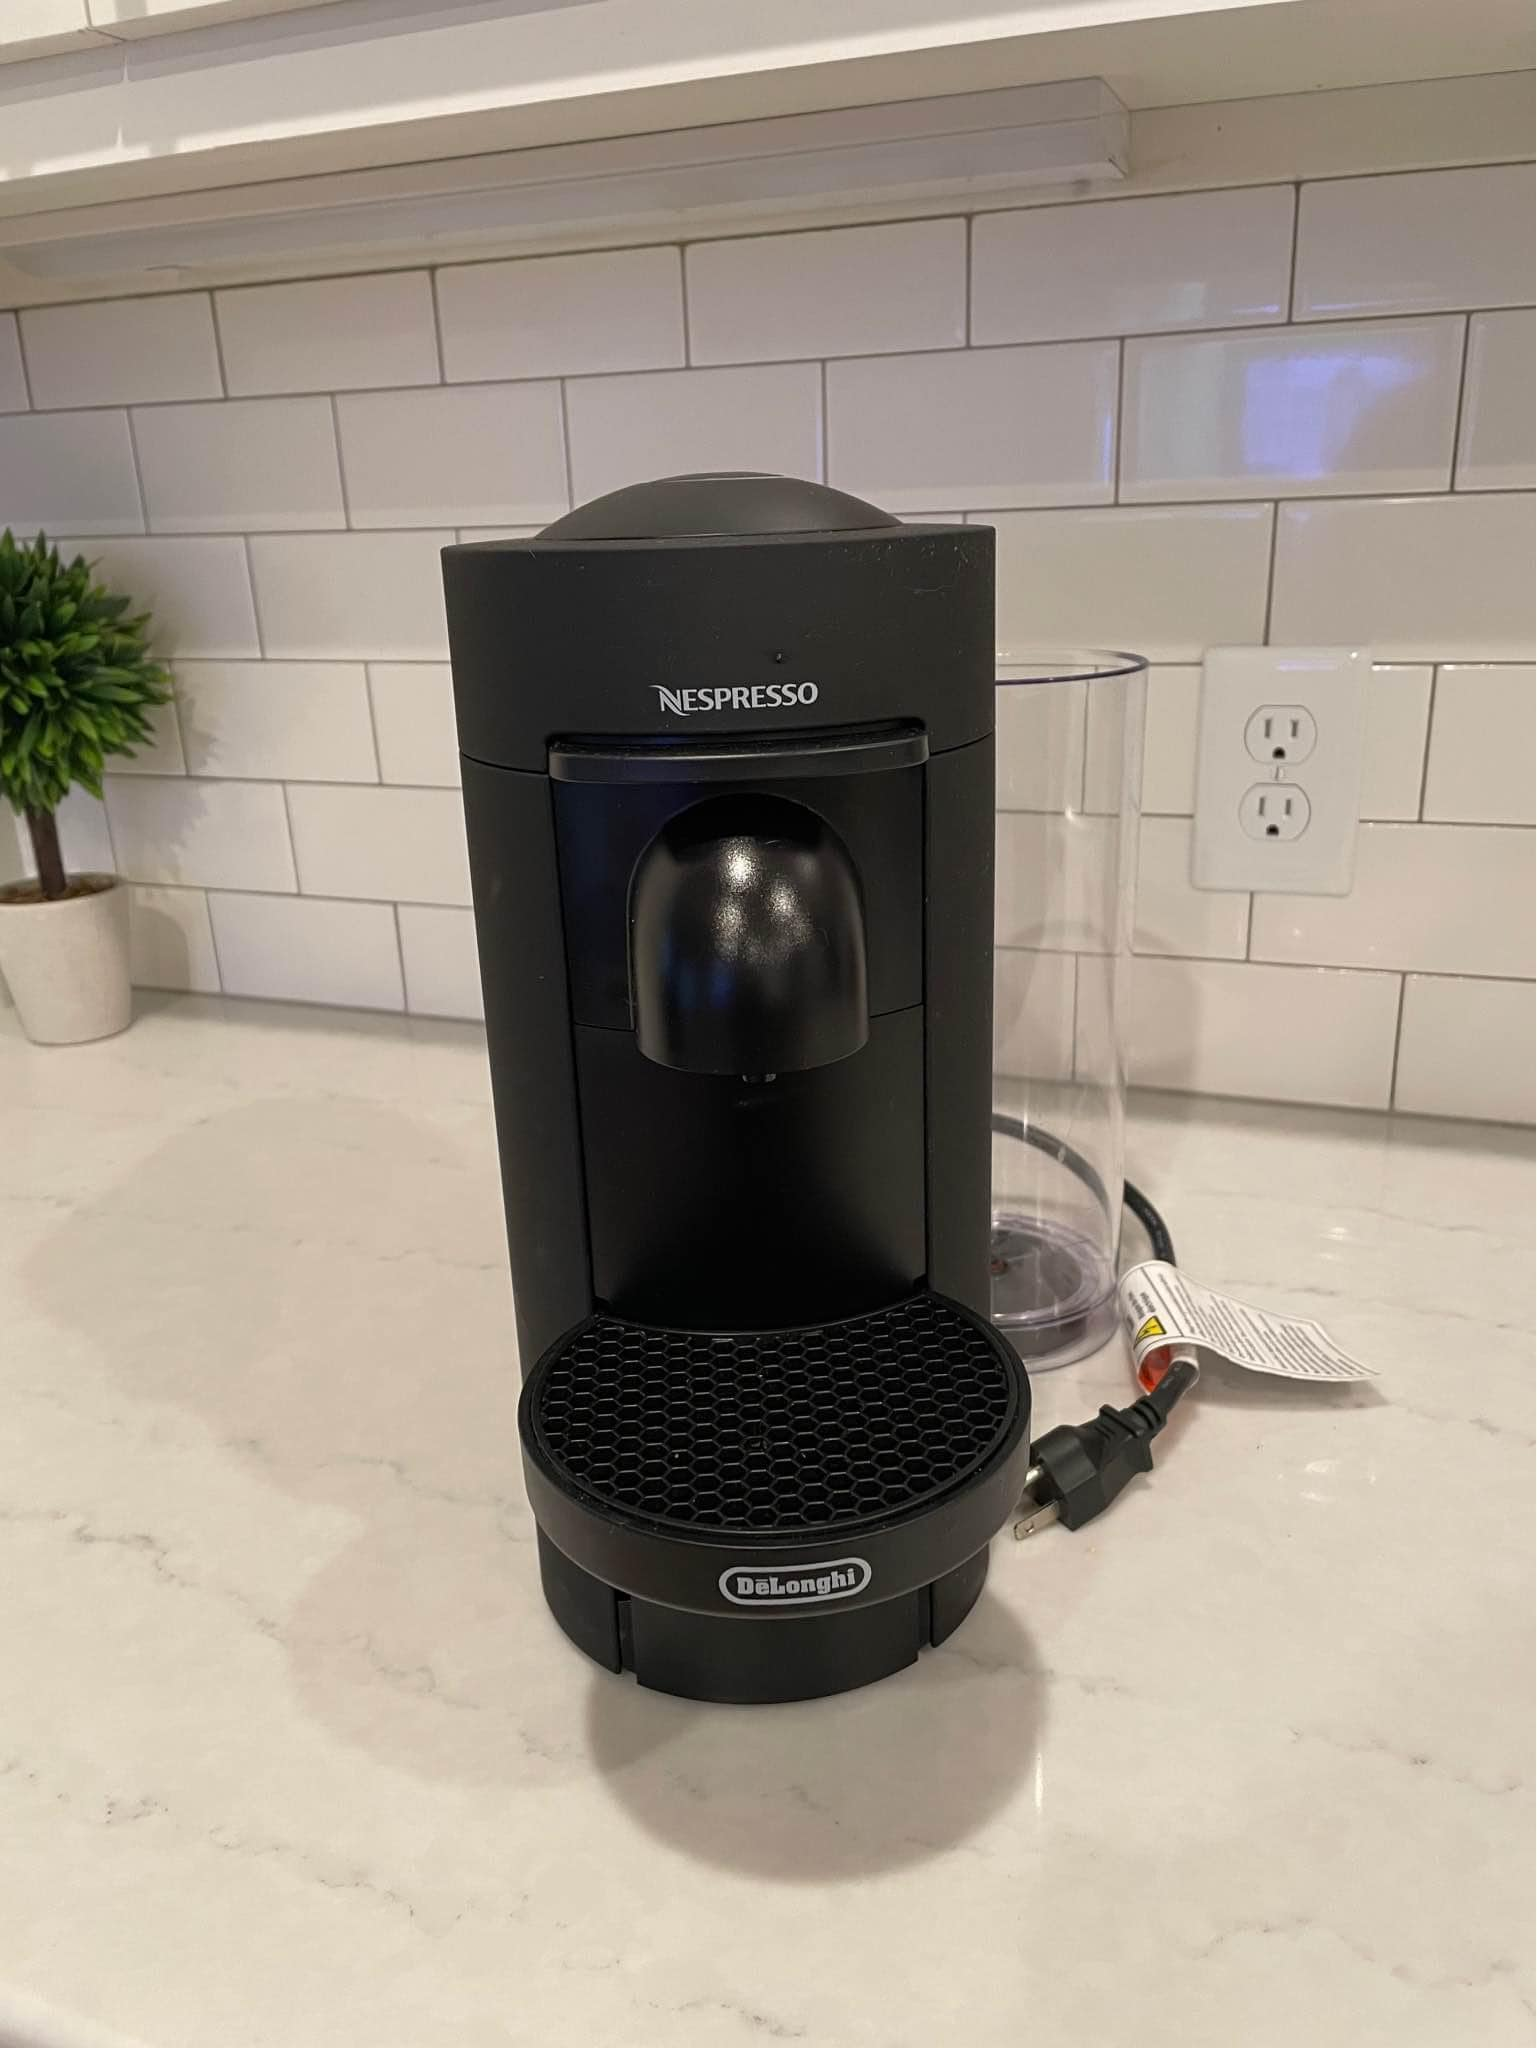 Delonghi Nespresso Vertuo Plus is narrower and more lightweight